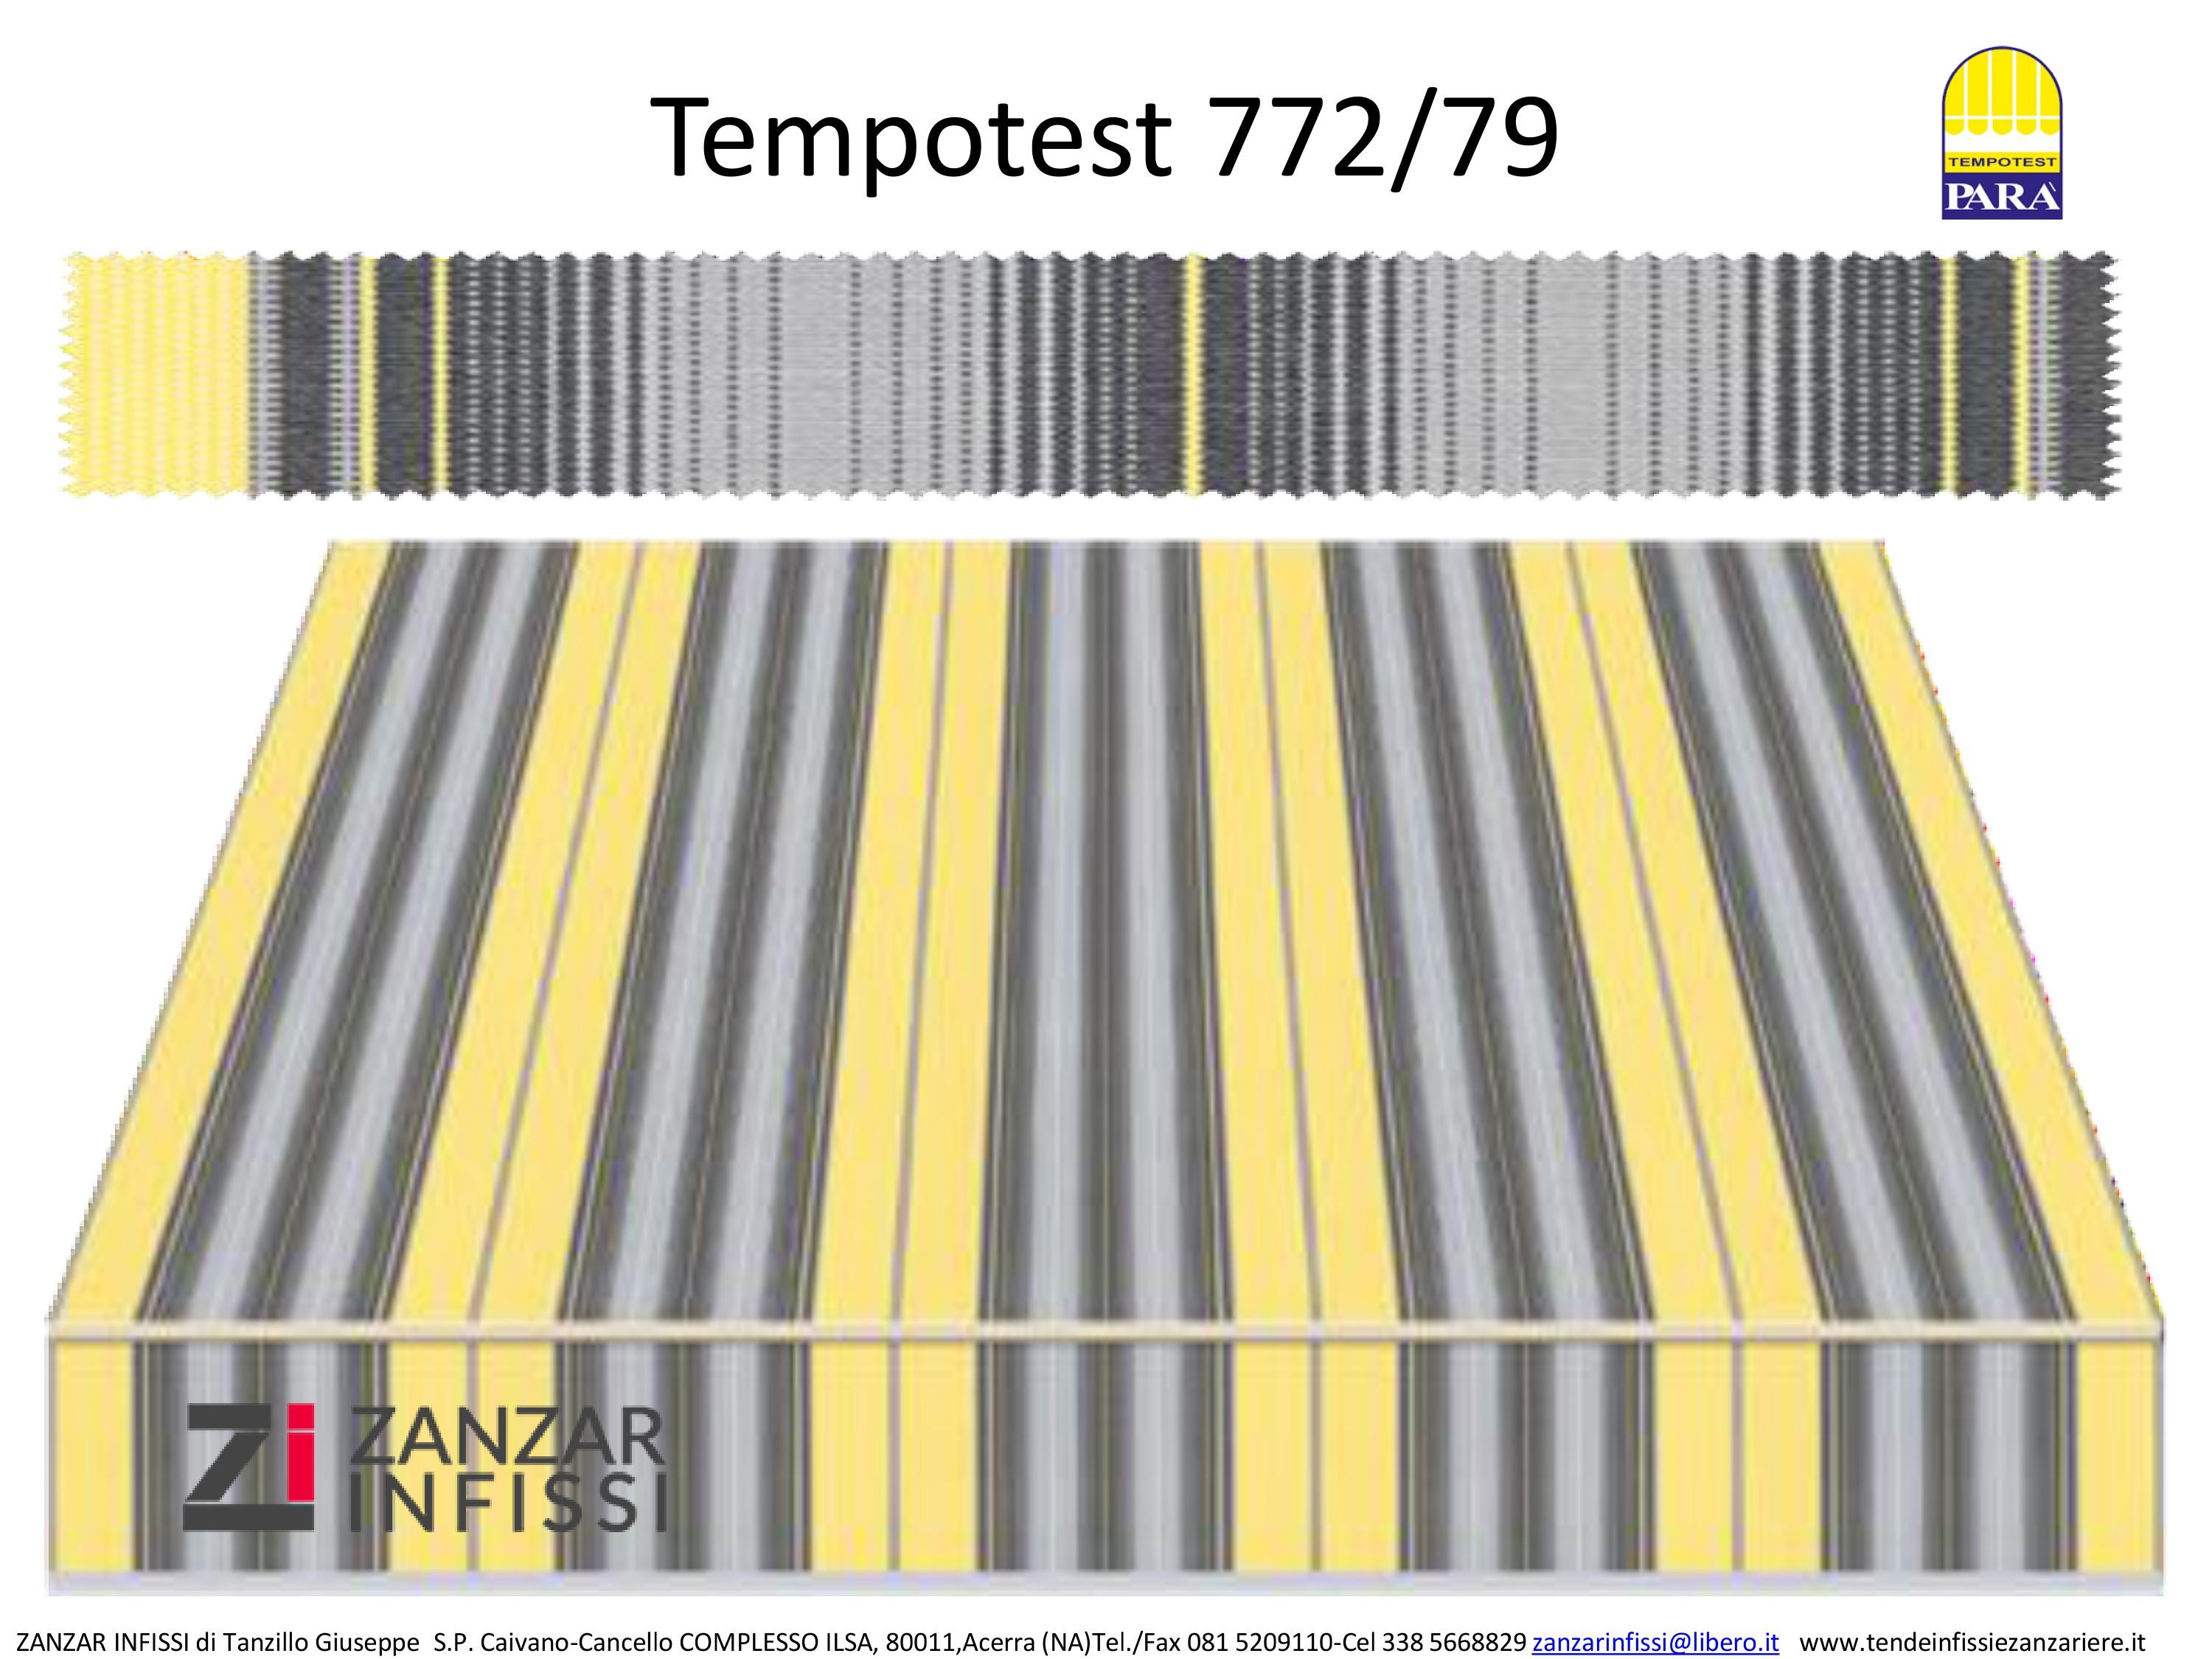 Tempotest 772/79